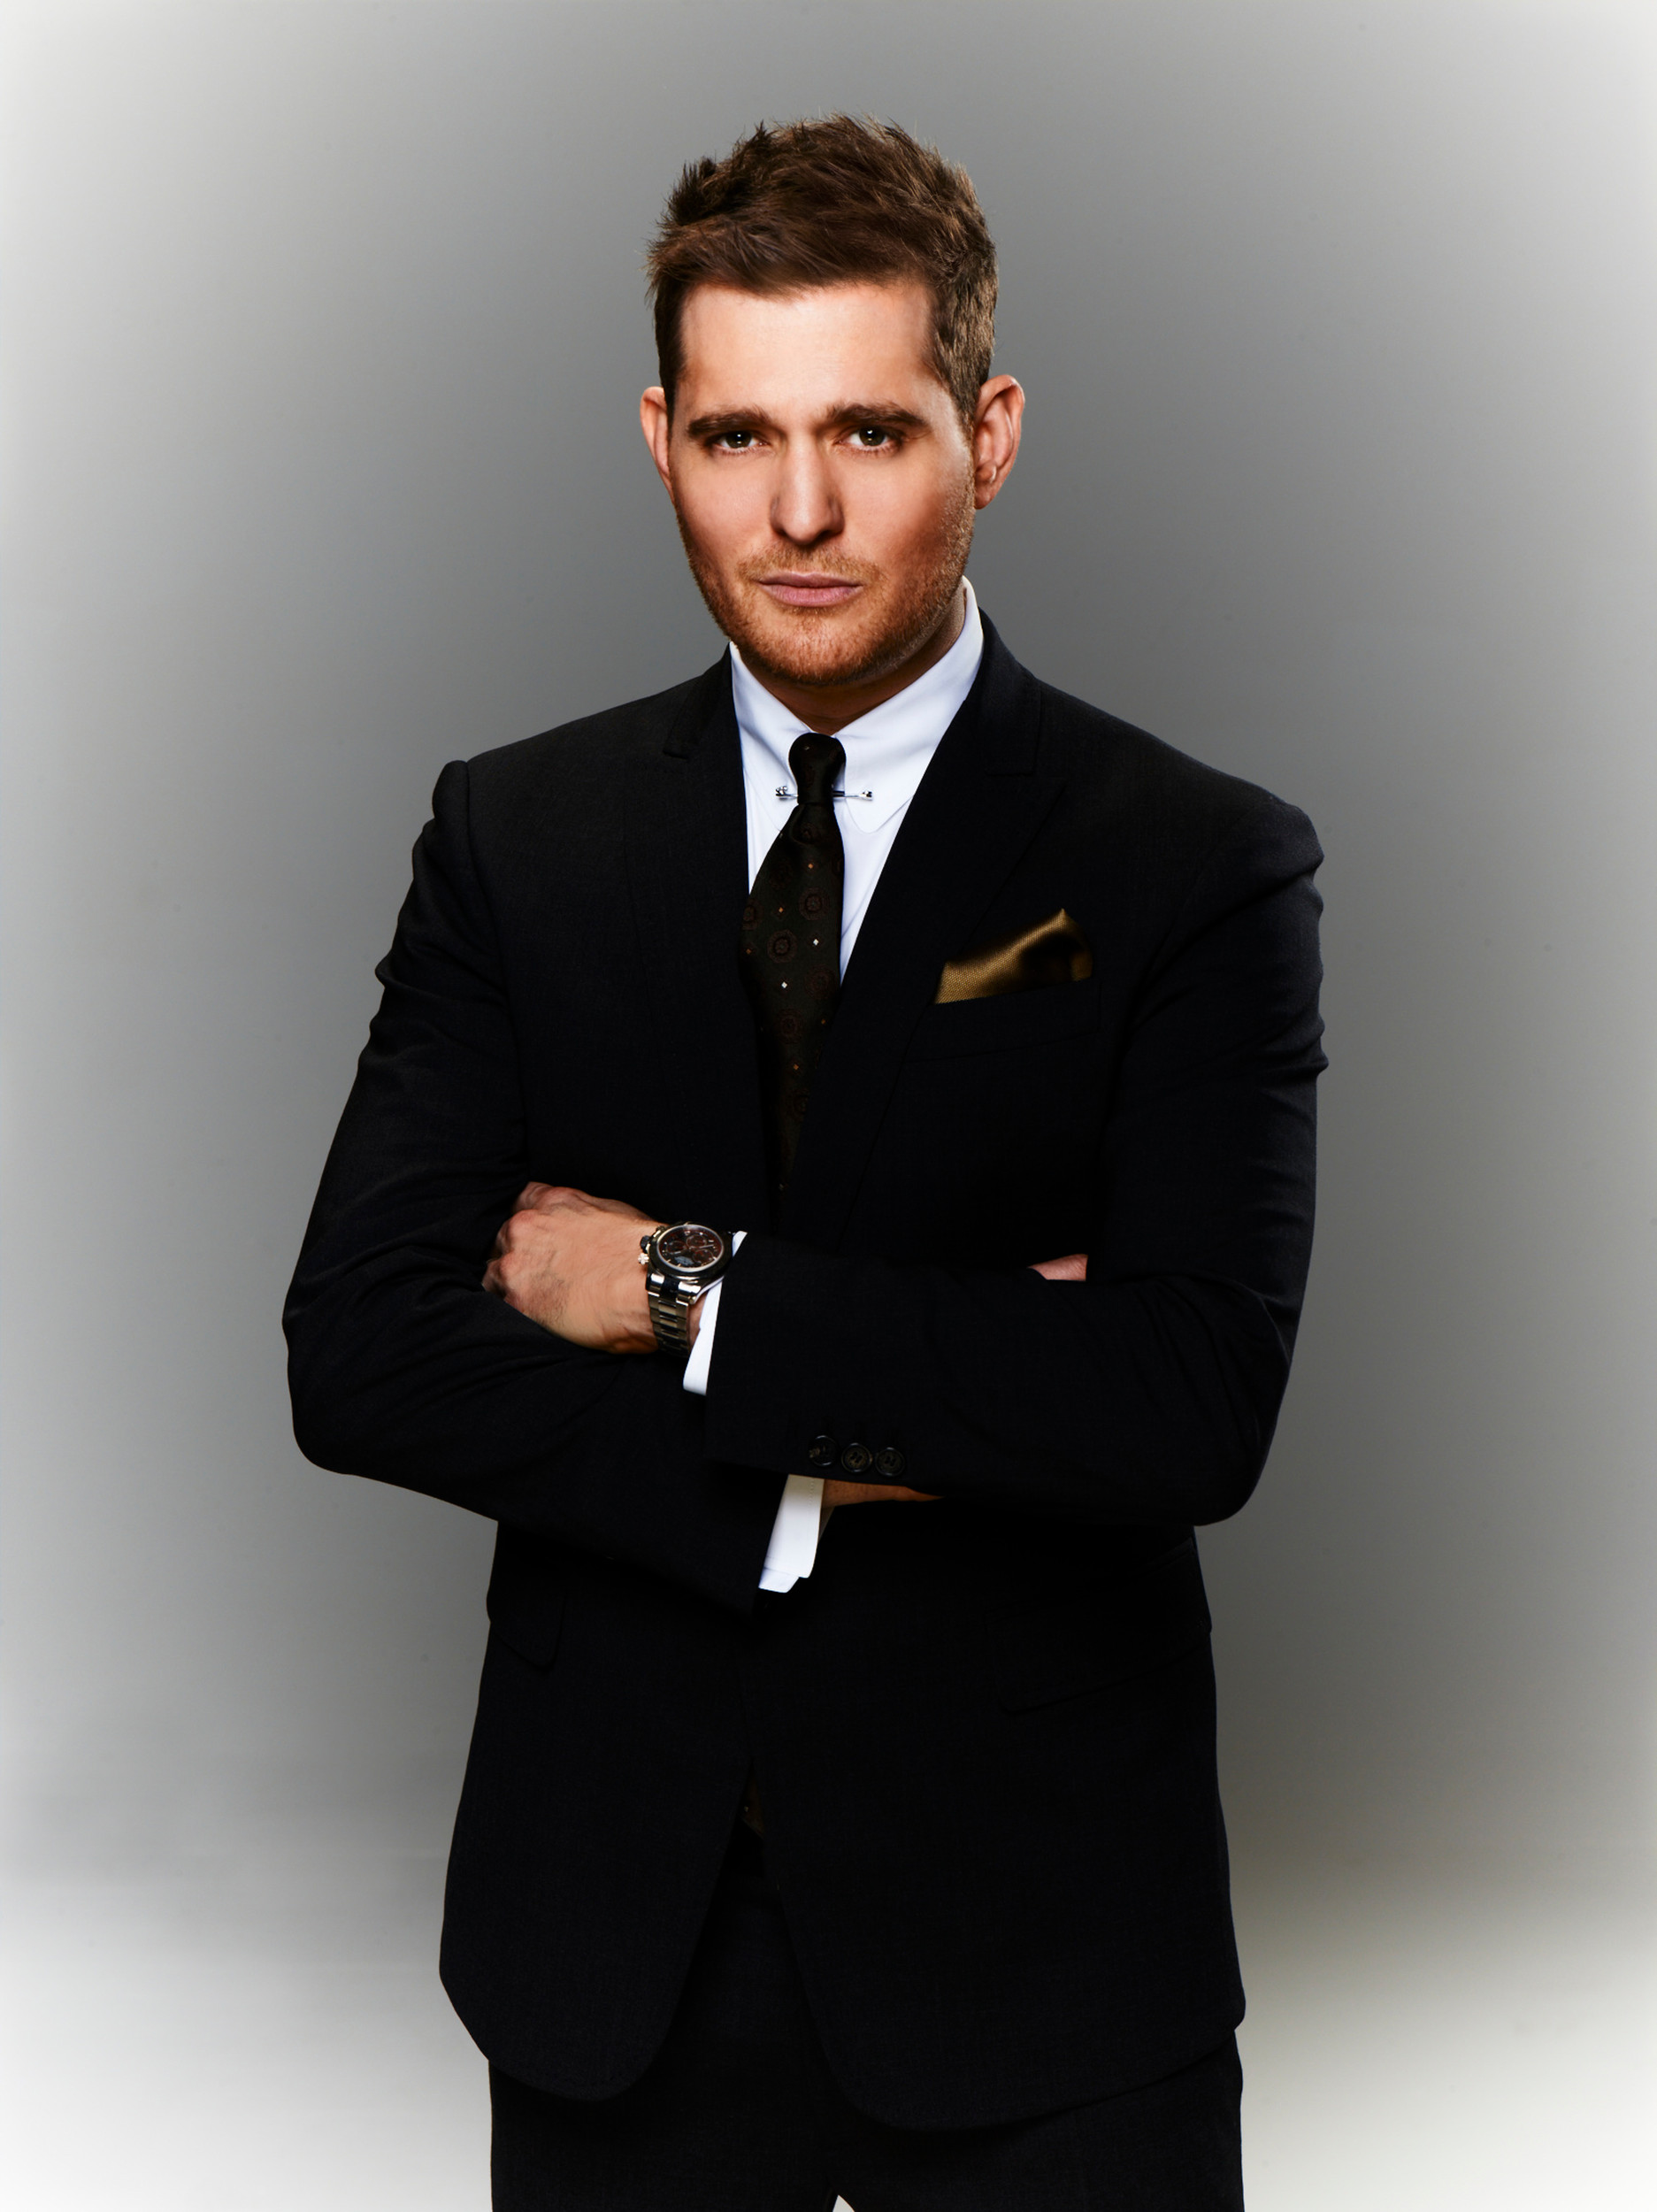 Grammy winning vocalist Michael Bublé croons his way on stage Oct. 29 at Veterans Memorial Arena in Downtown Jacksonville.